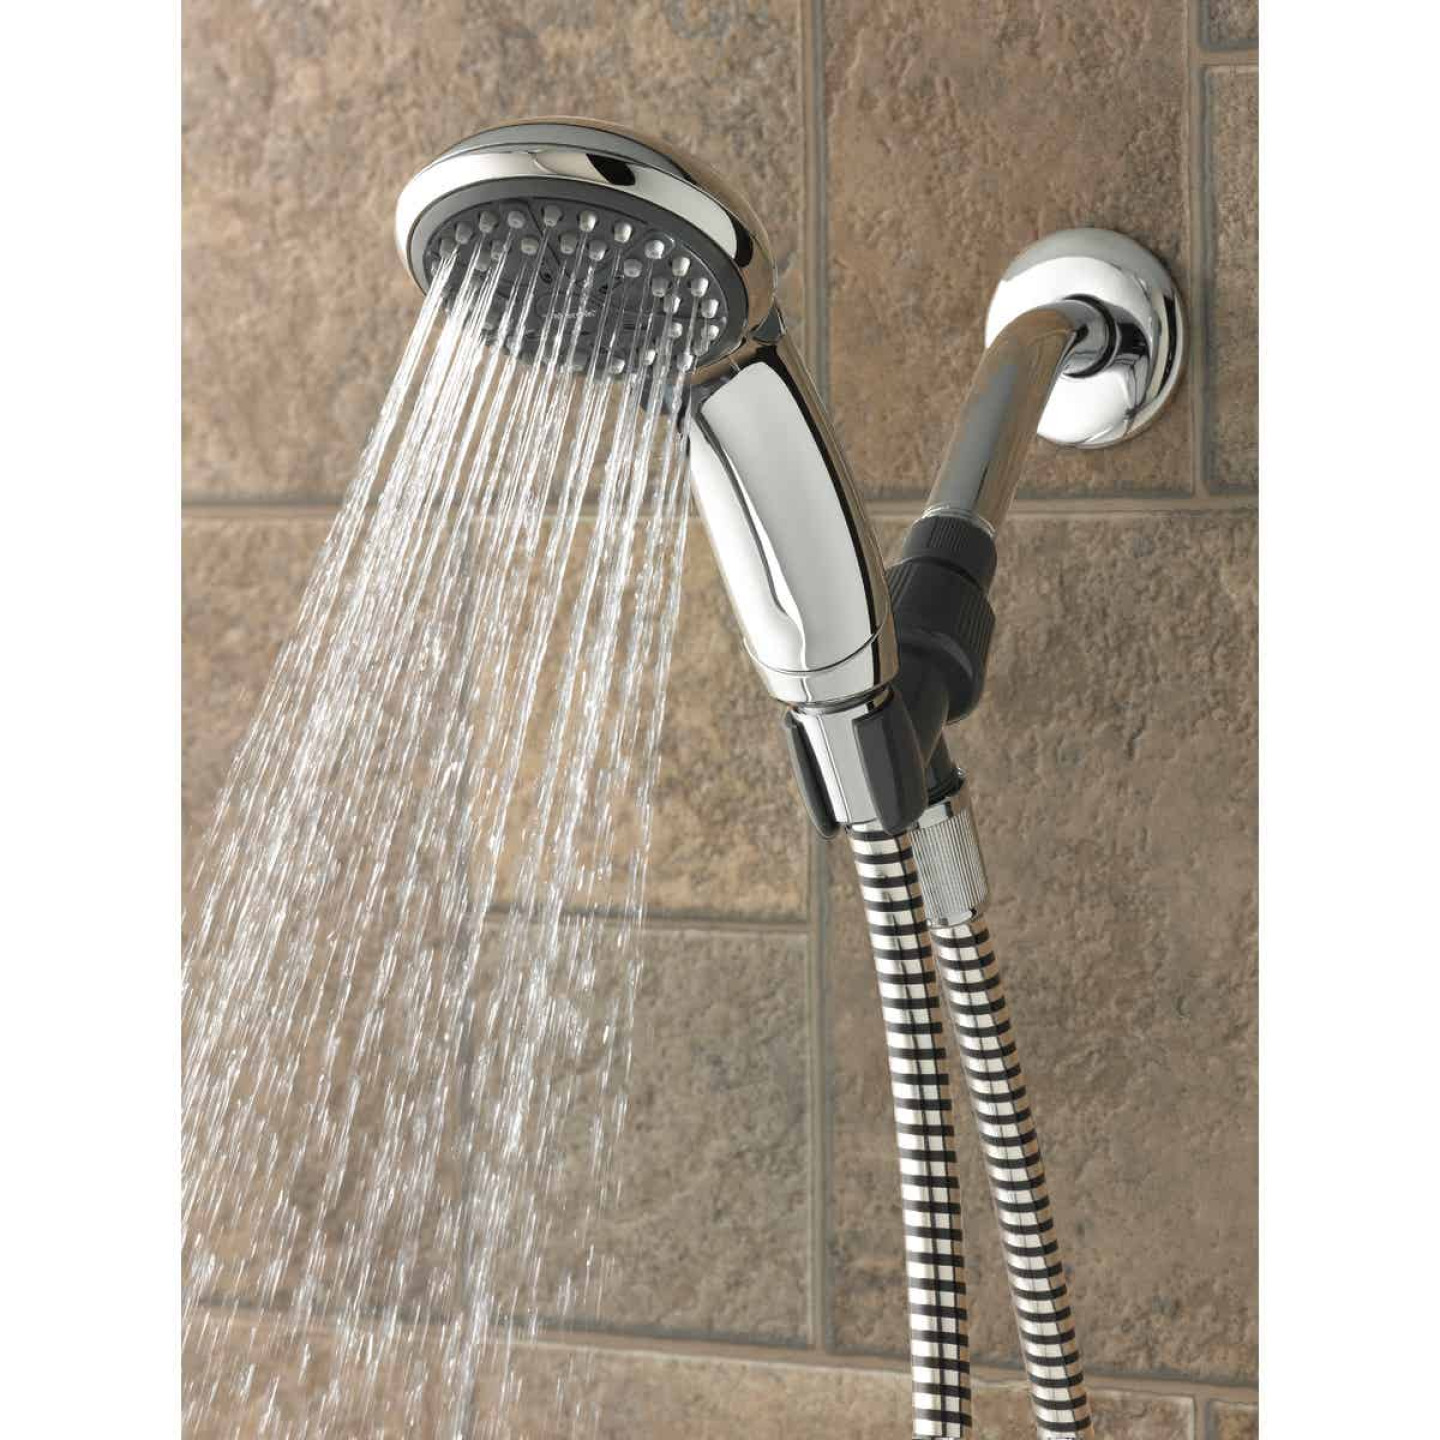 Waterpik EcoFlow 3-Spray 1.6 GPM Handheld Shower, Chrome Image 2